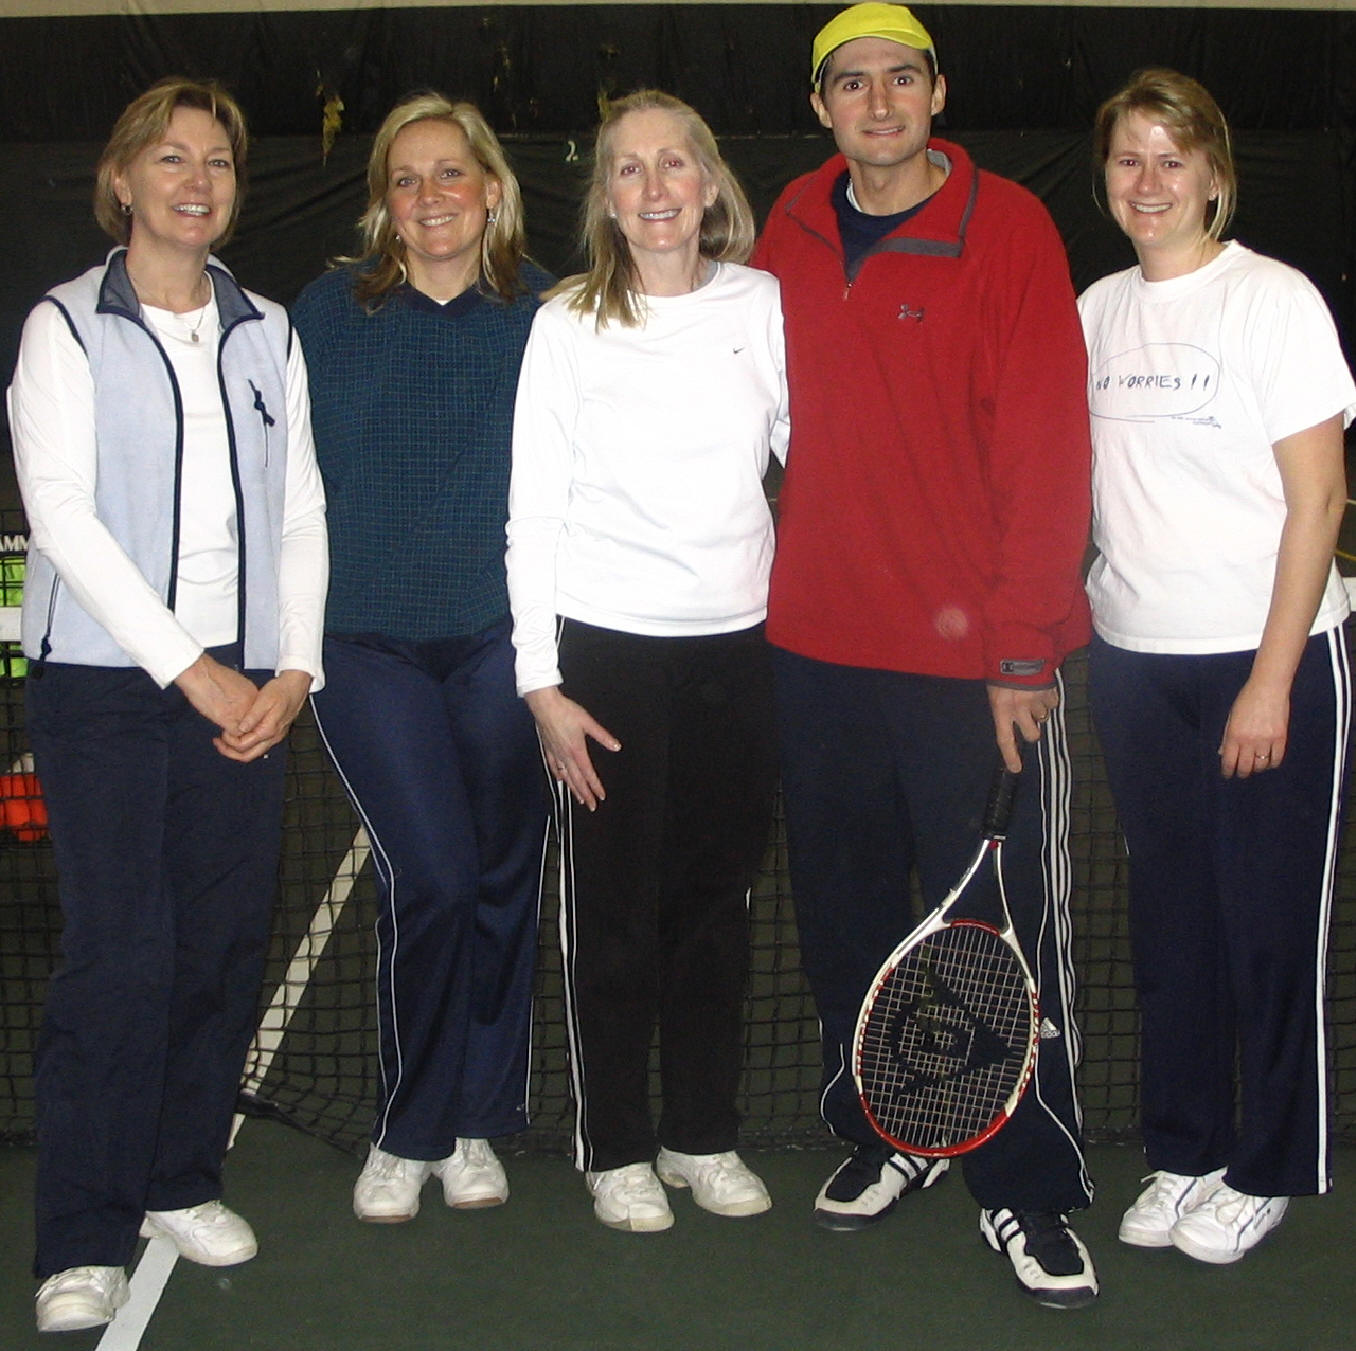 Tennis basics learn how to play